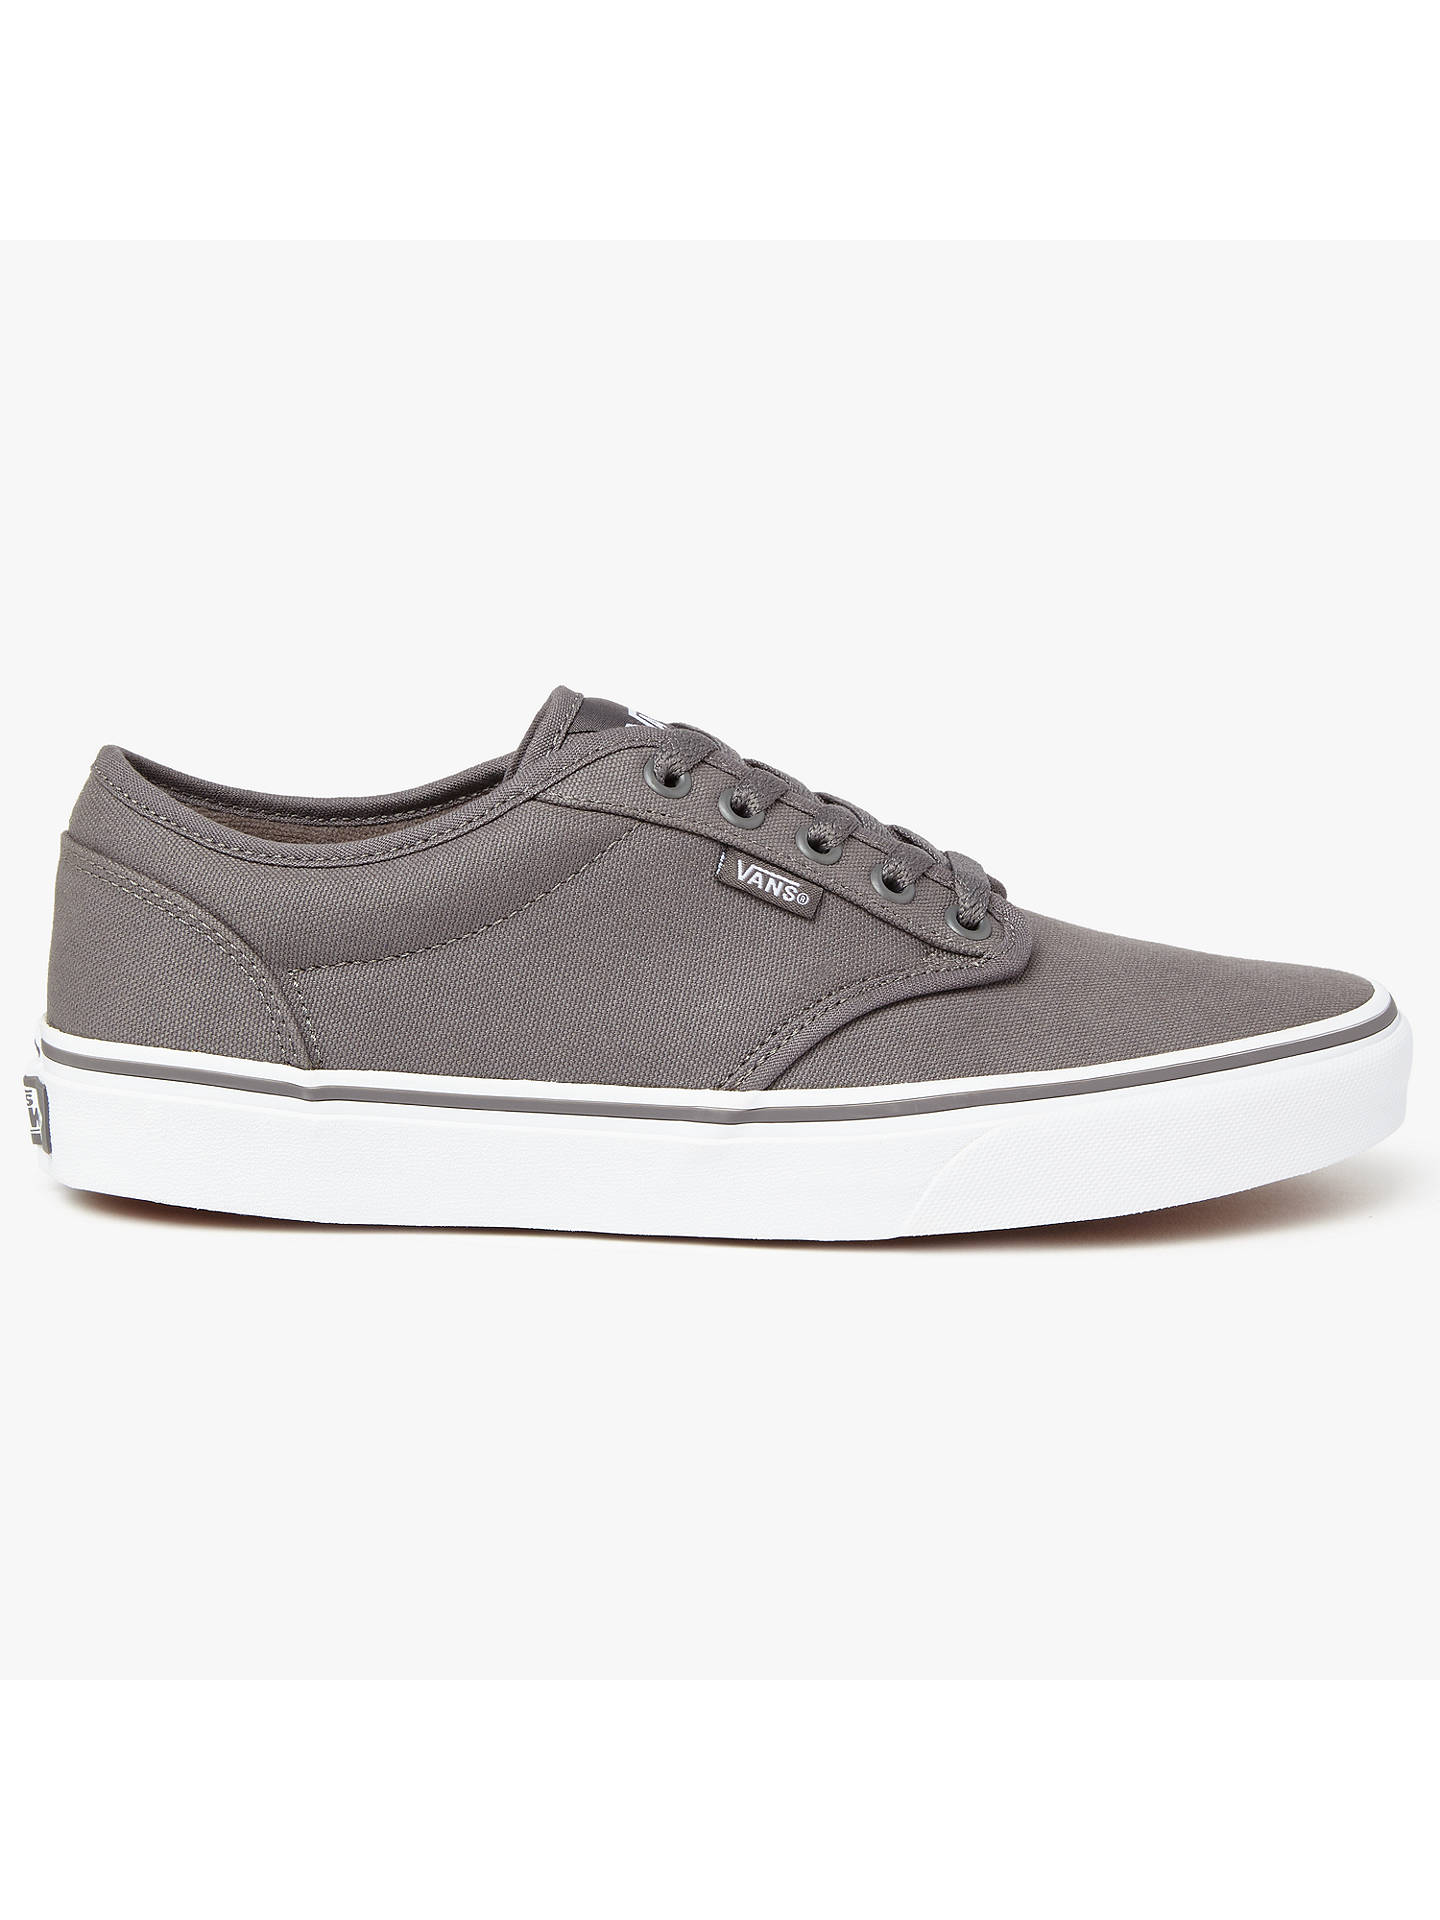 35de79f9bef4e8 Vans Atwood Canvas Trainers at John Lewis   Partners